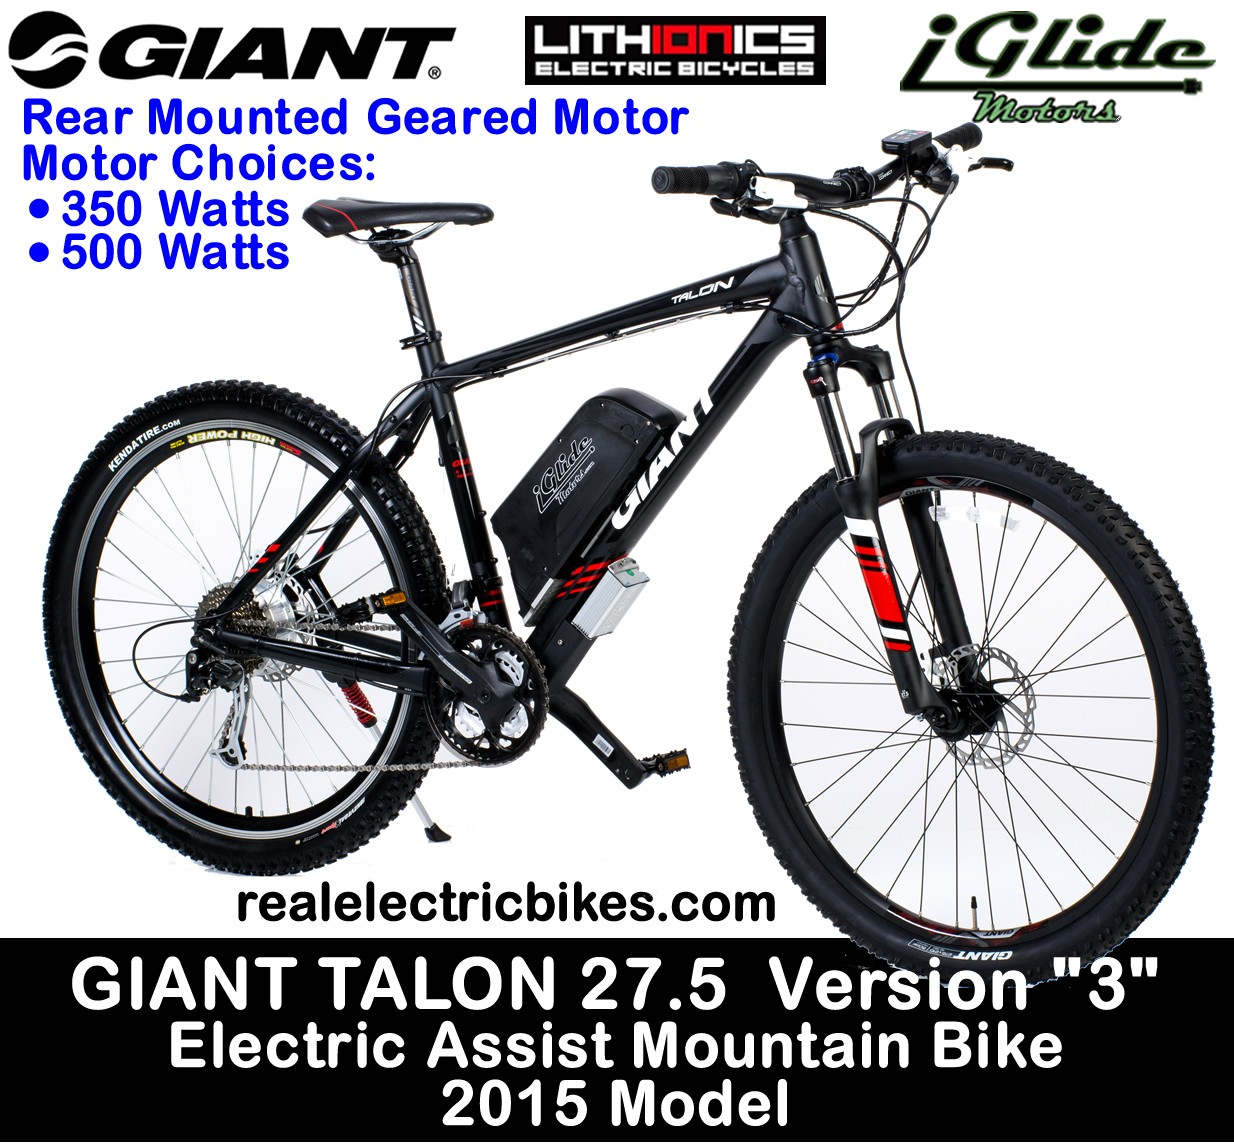 2015 Giant Talon 27 5 Version 3 Size Large Front Suspension